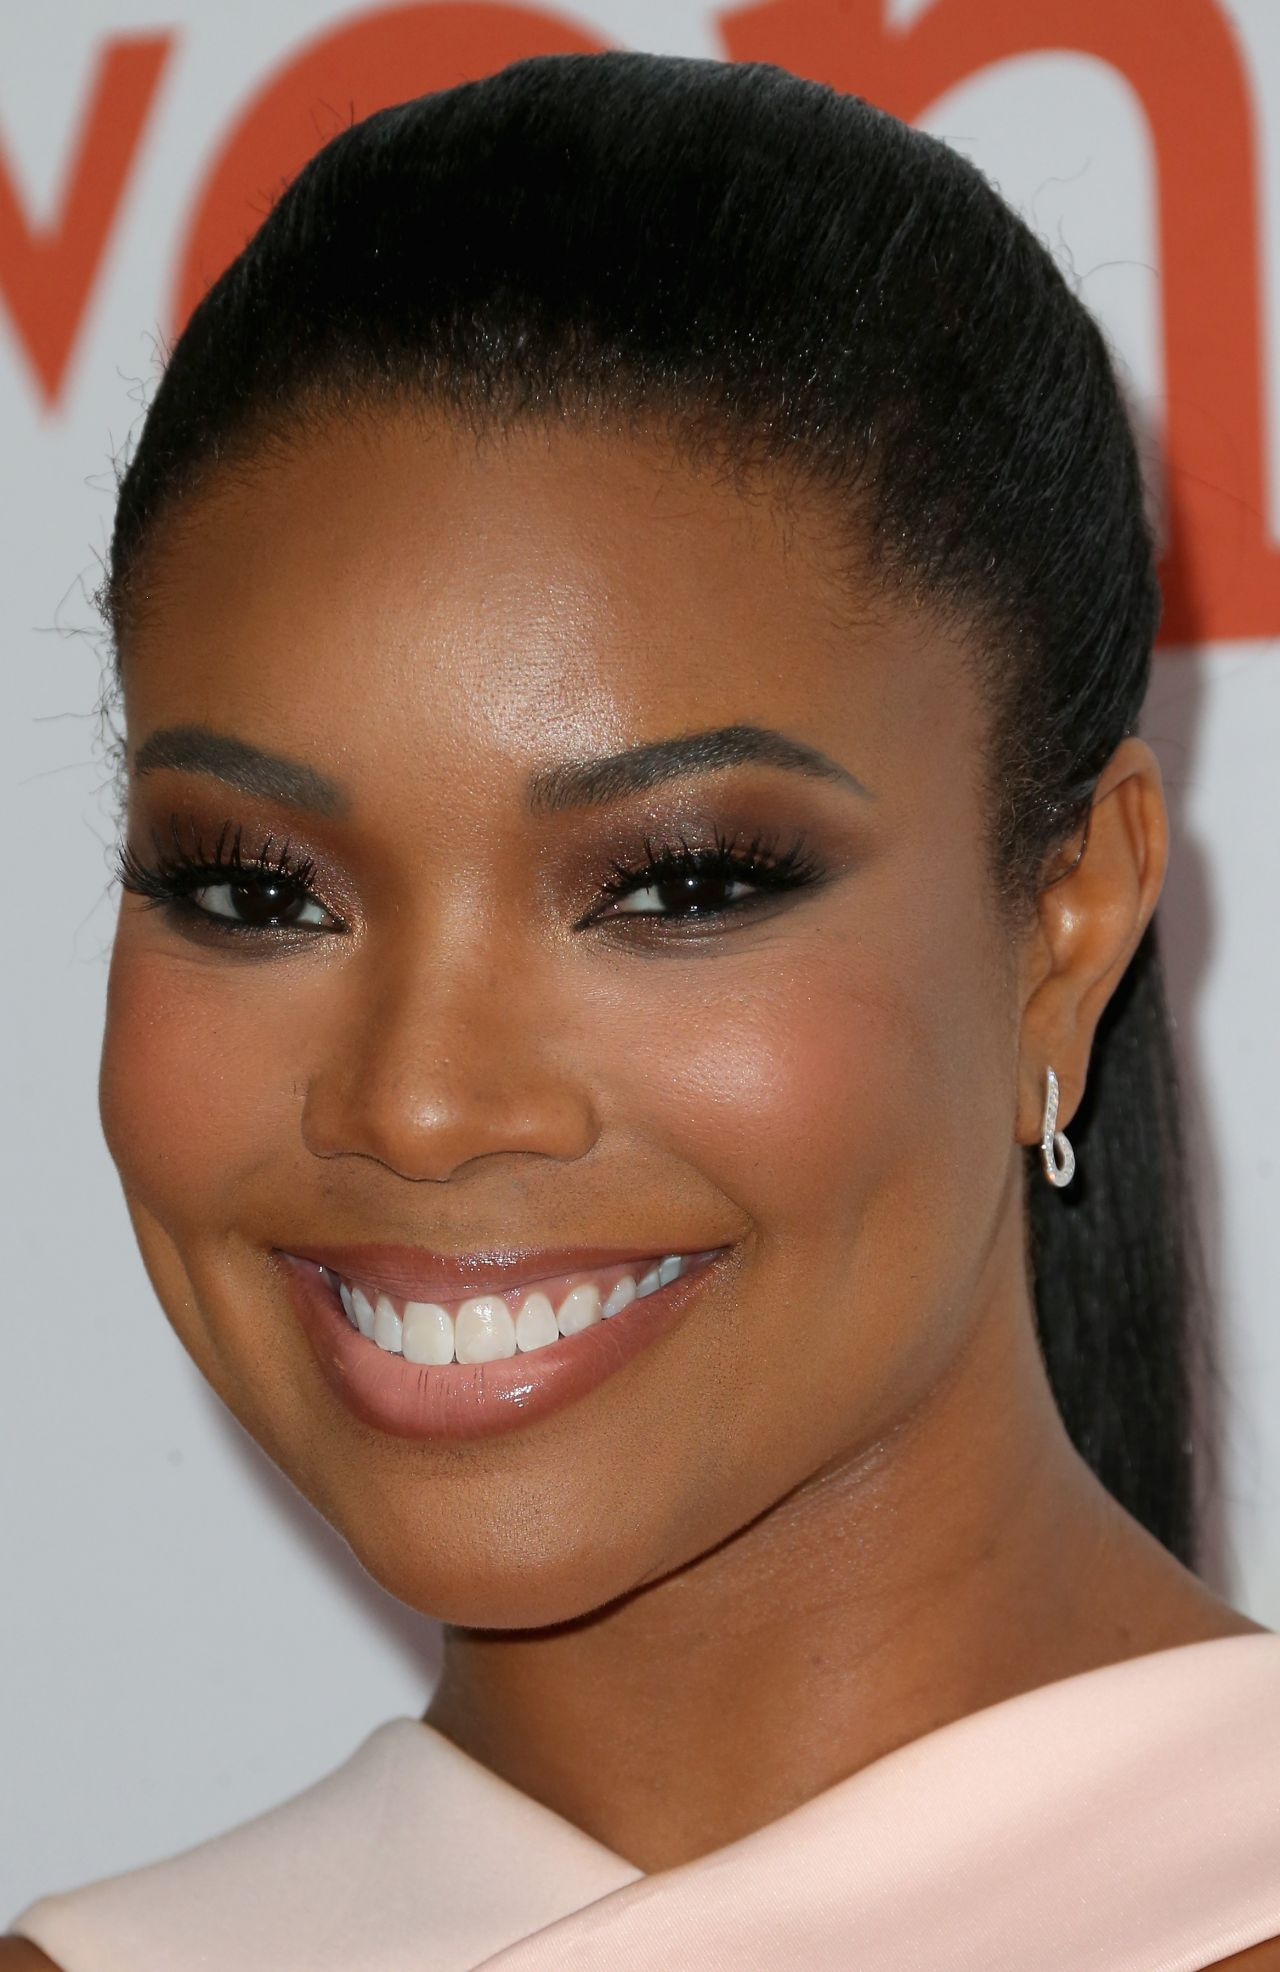 Gabrielle Union suffered eight or nine miscarriages while